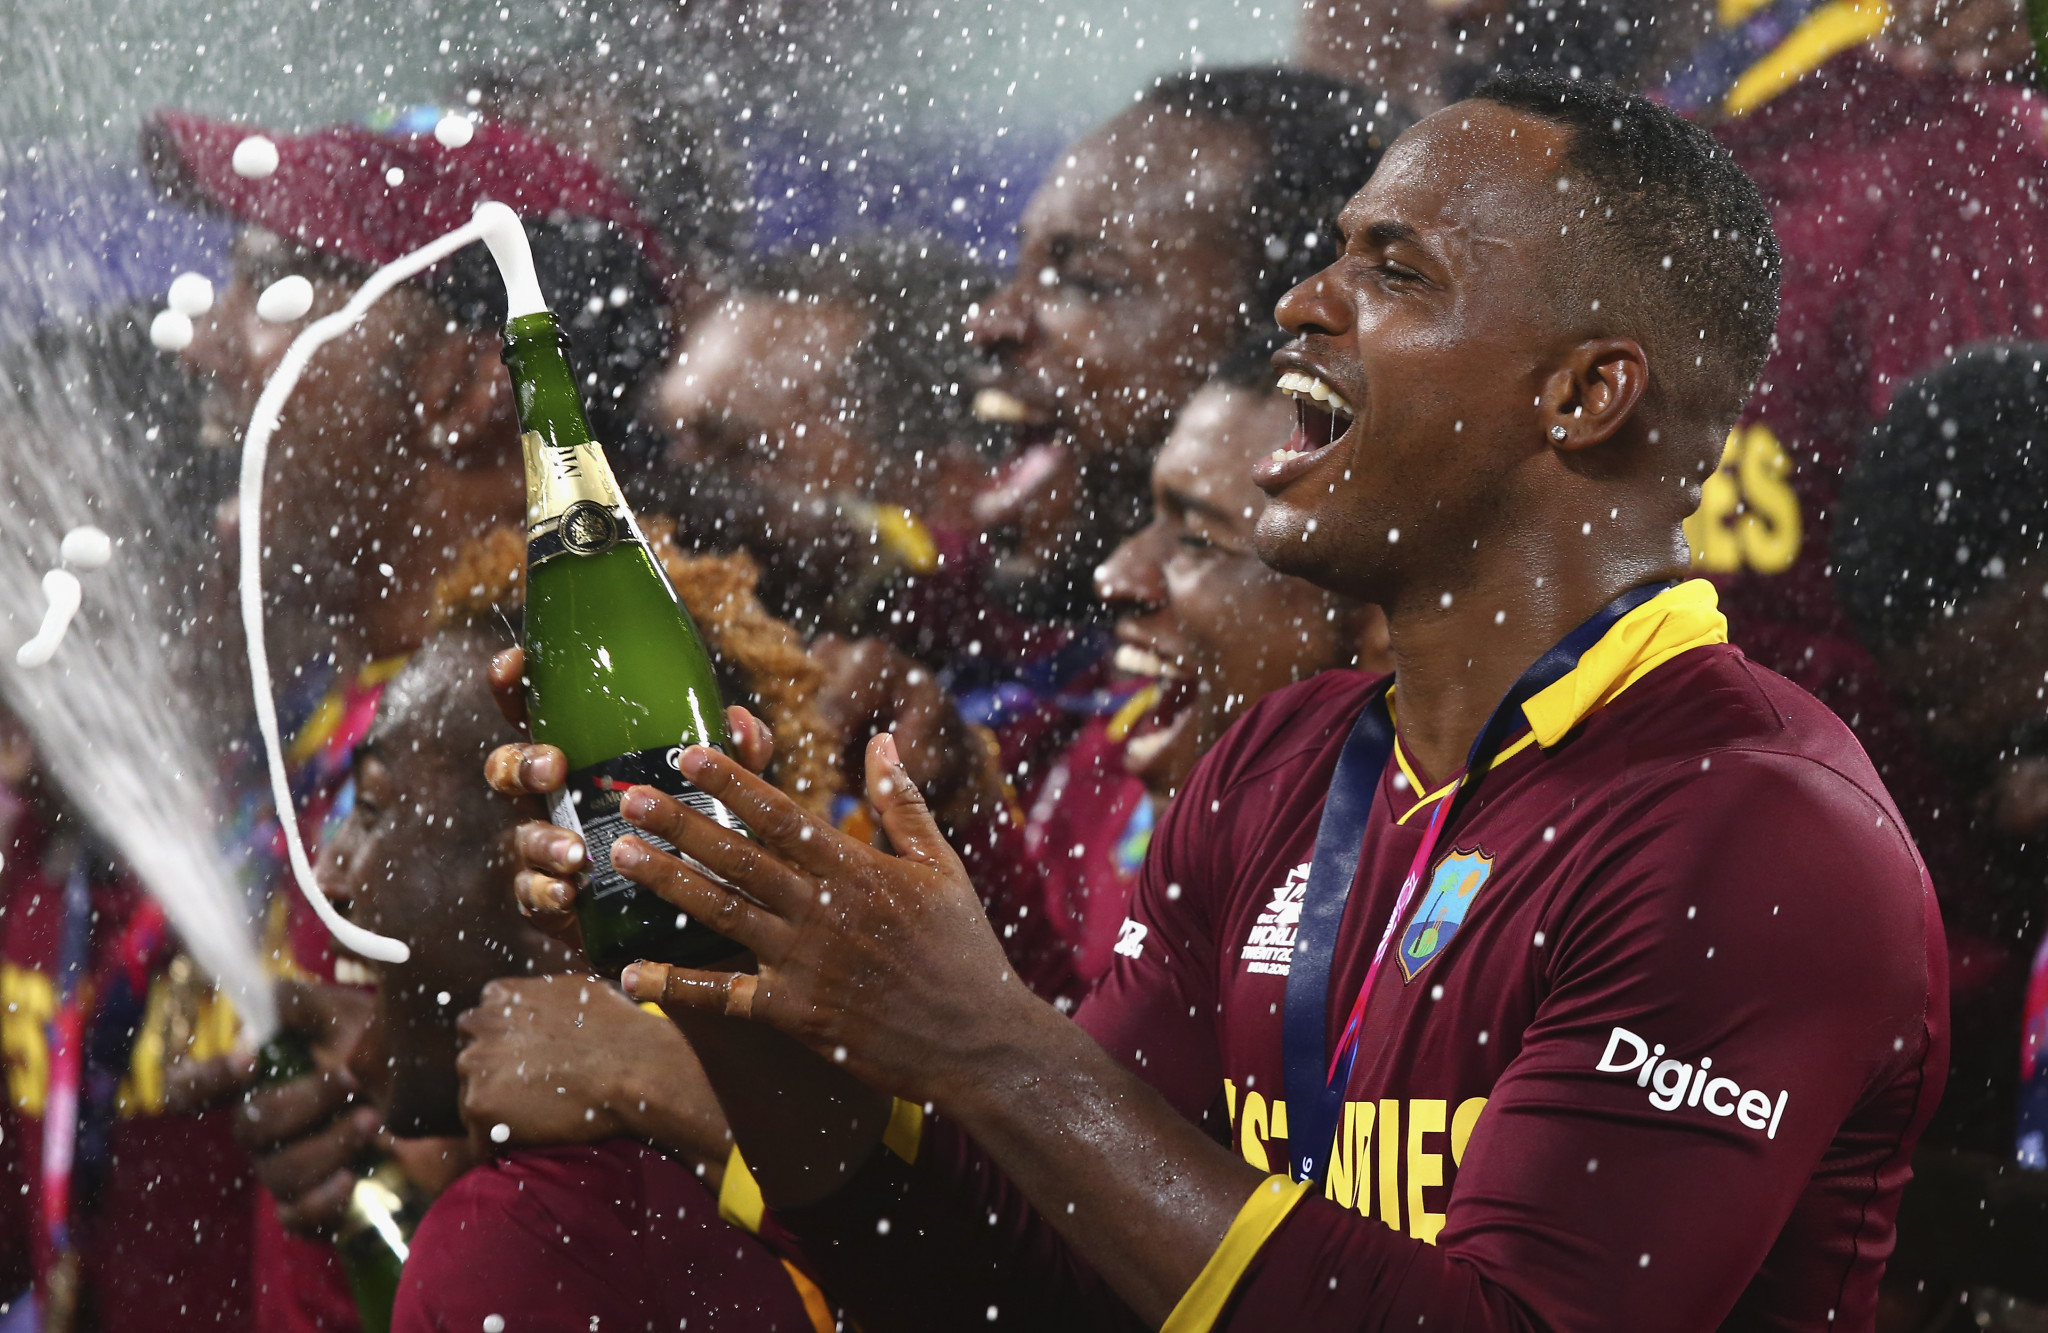 ICC charges West Indies great Samuels with four anti-corruption offences